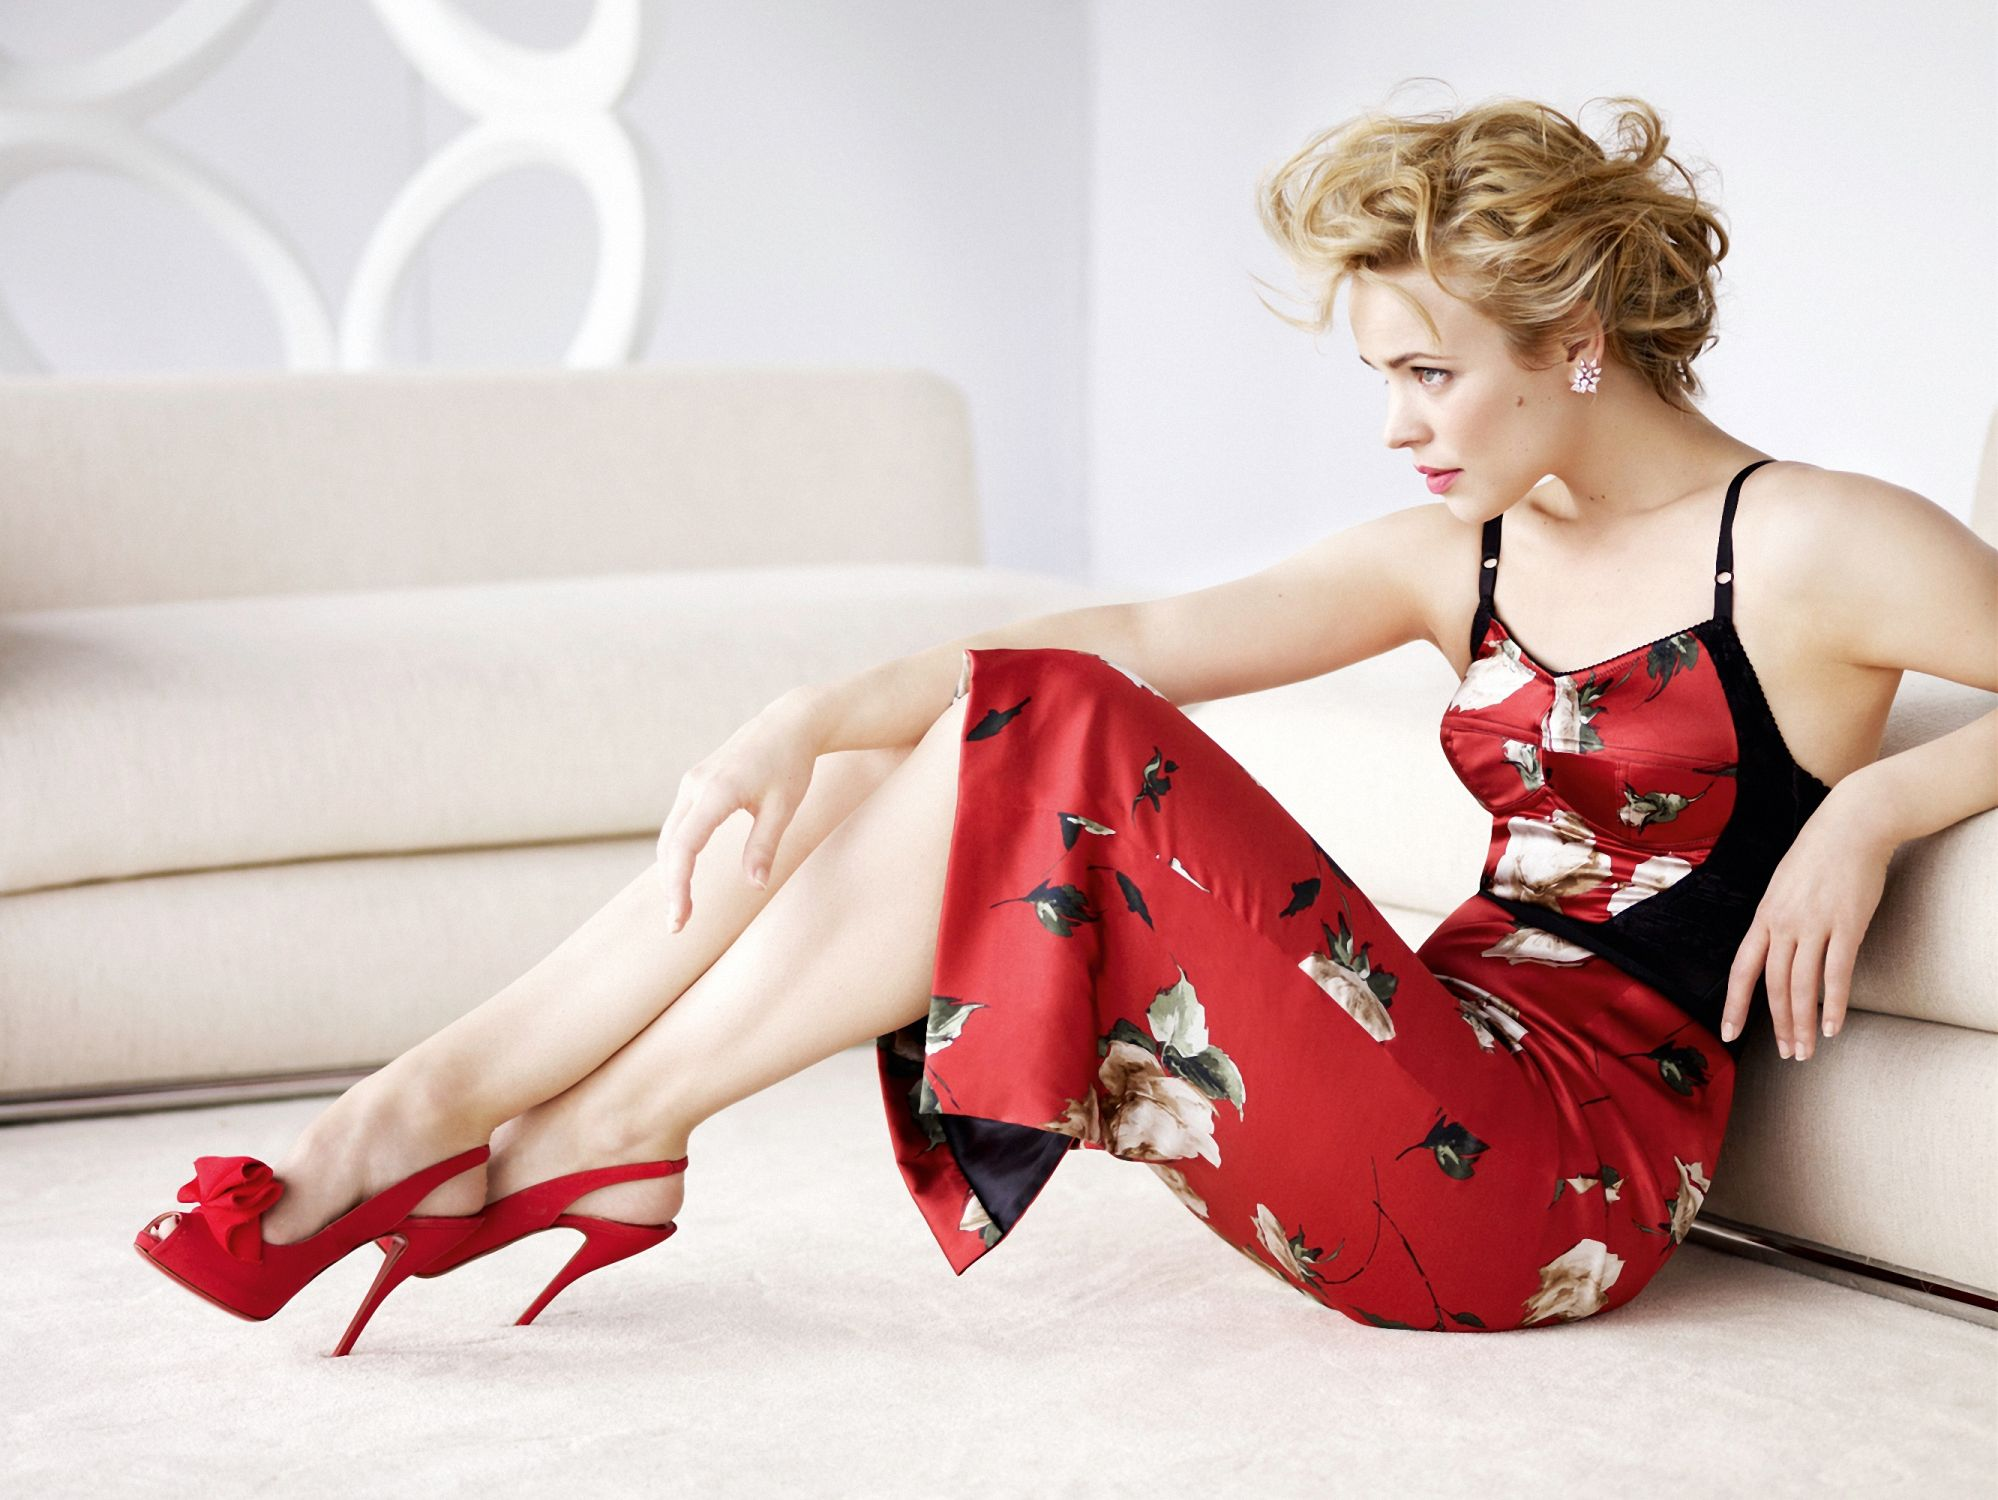 Rachel McAdams Sexy Feet in high heels